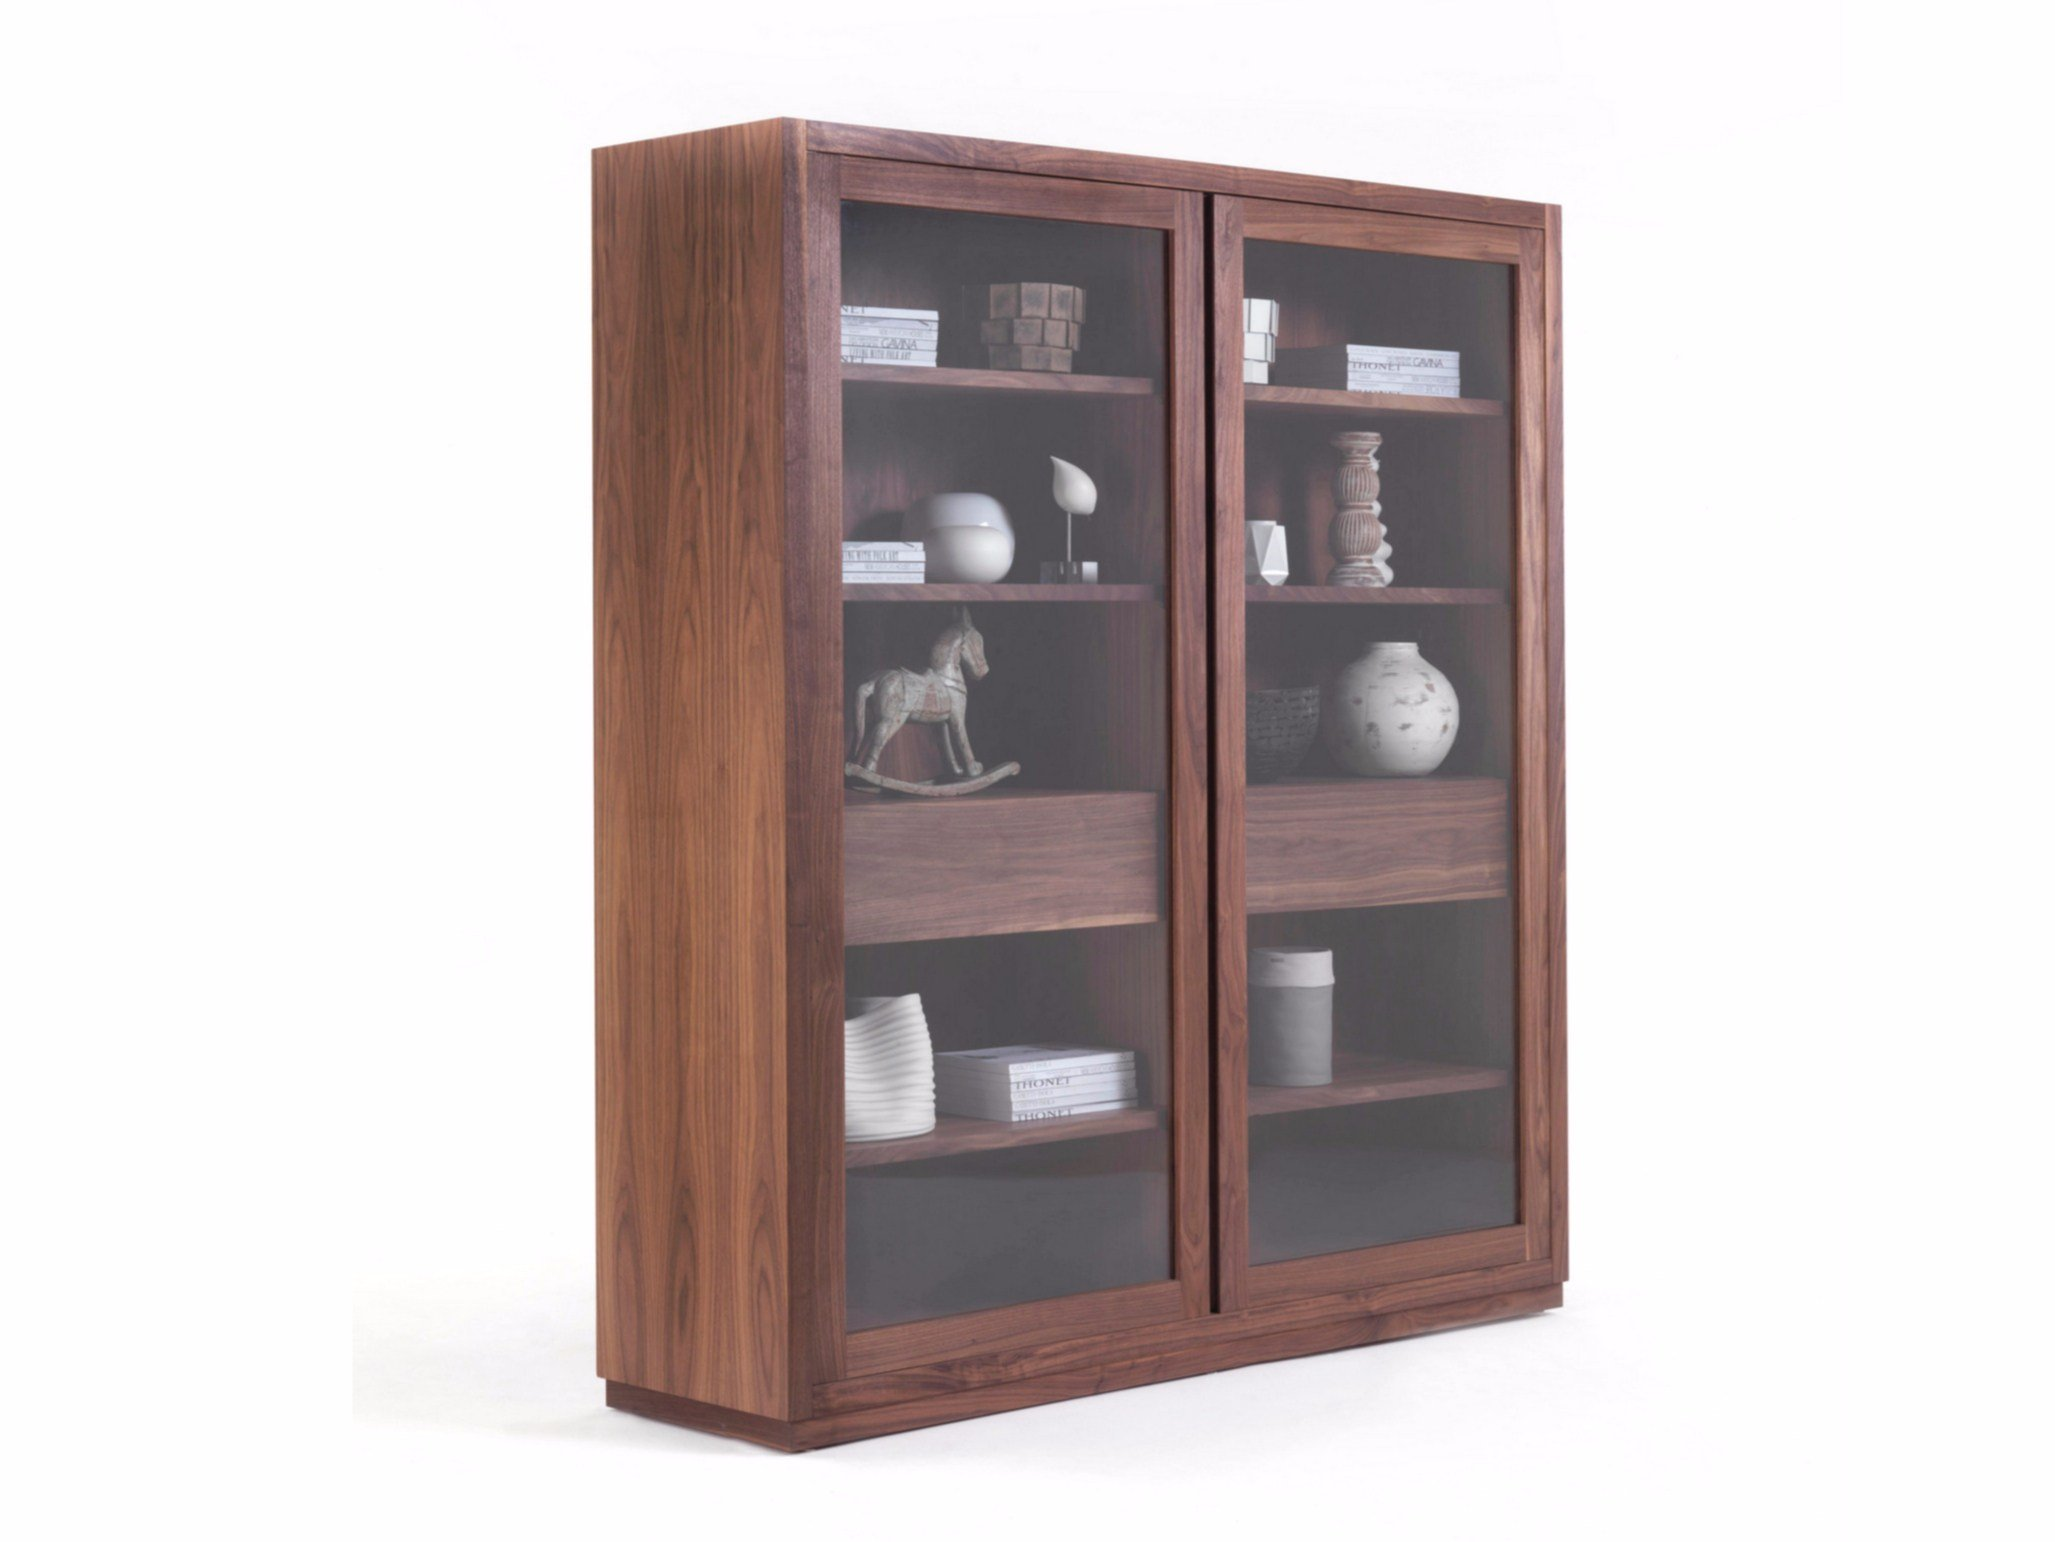 Delightful Wood And Glass Display Cabinet KYOTO GLASS CABINET By Riva 1920 Design  C.R.u0026S. RIVA1920 Part 2